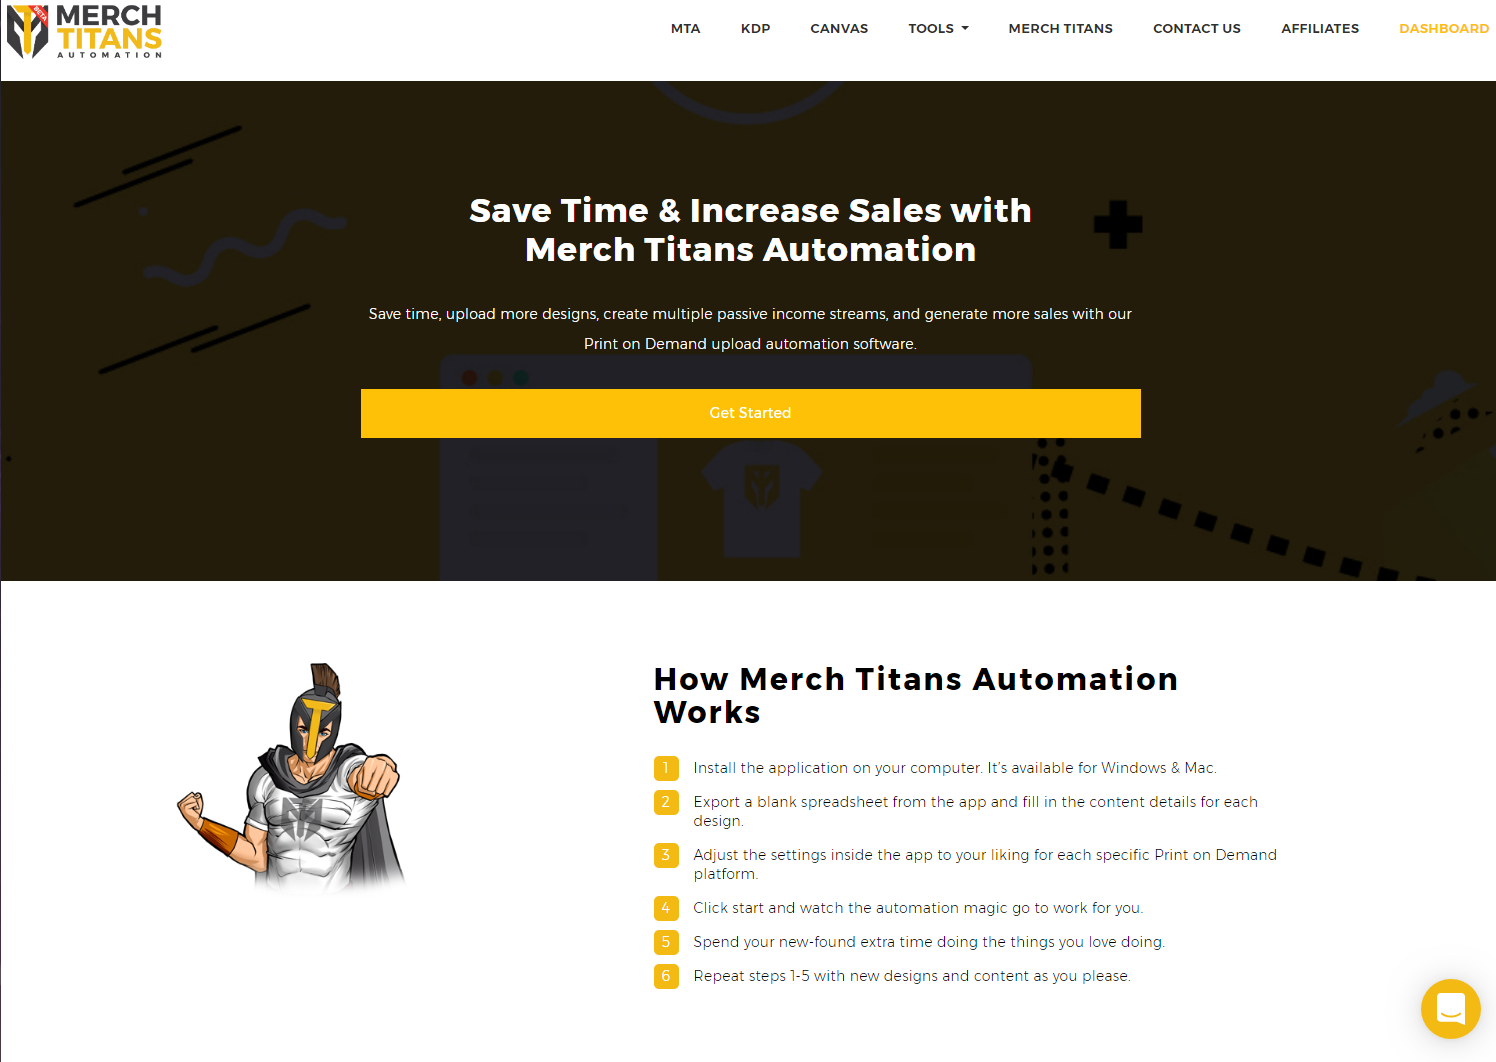 Merch Titans Print on Demand Automation